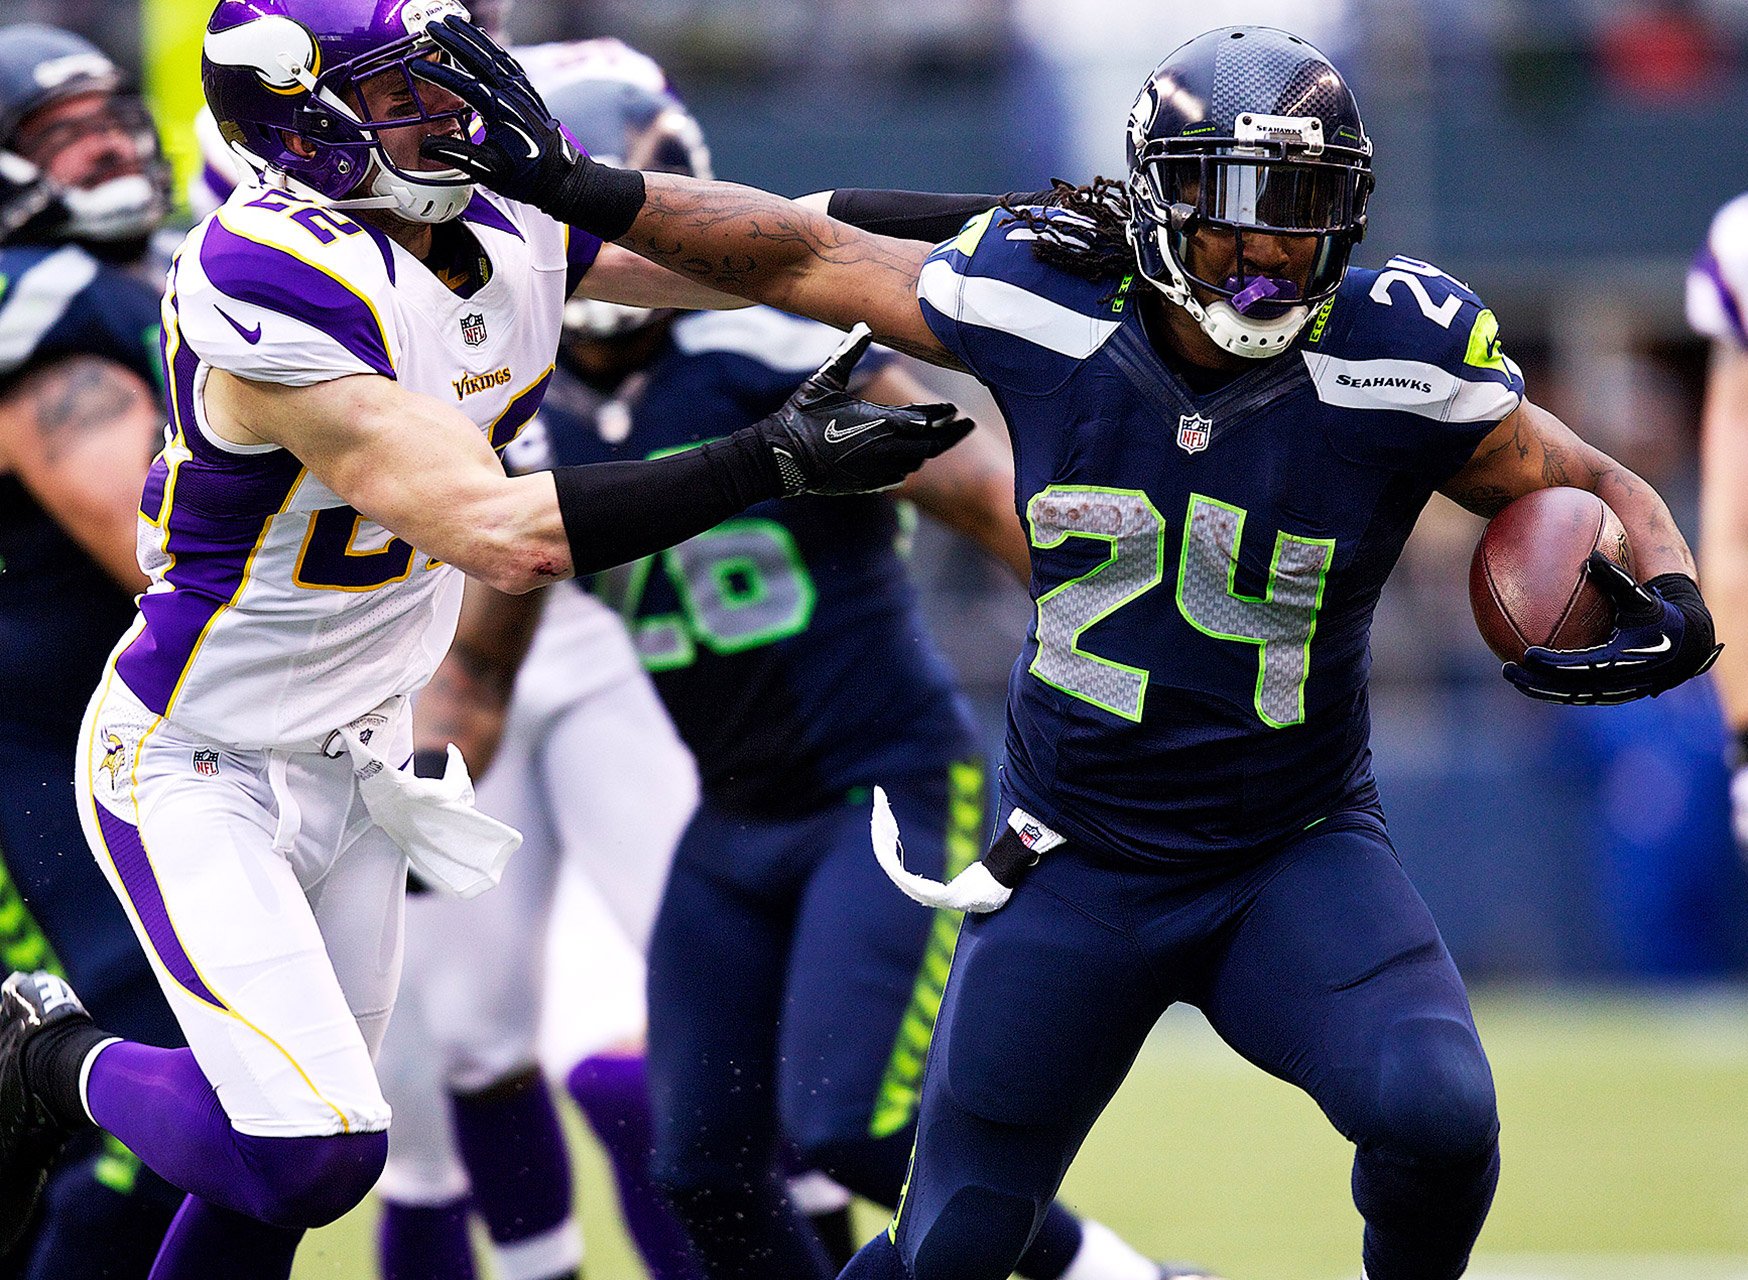 #NFLRank No. 27, Offense: Marshawn Lynch